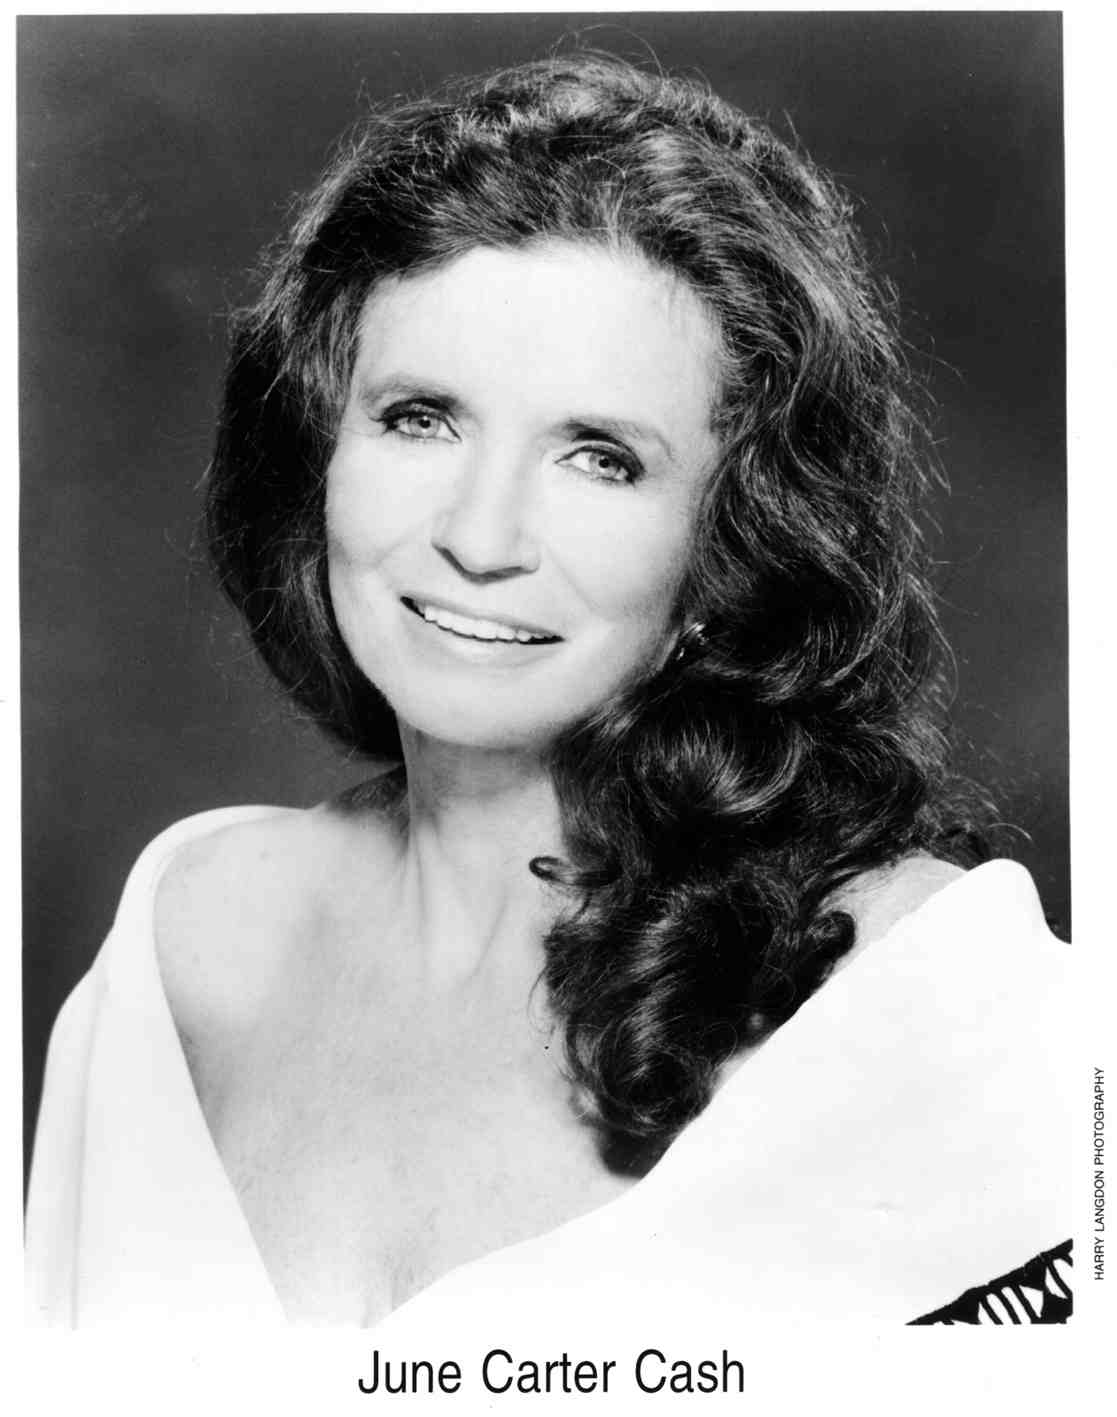 June Carter Cash Publicity Photo